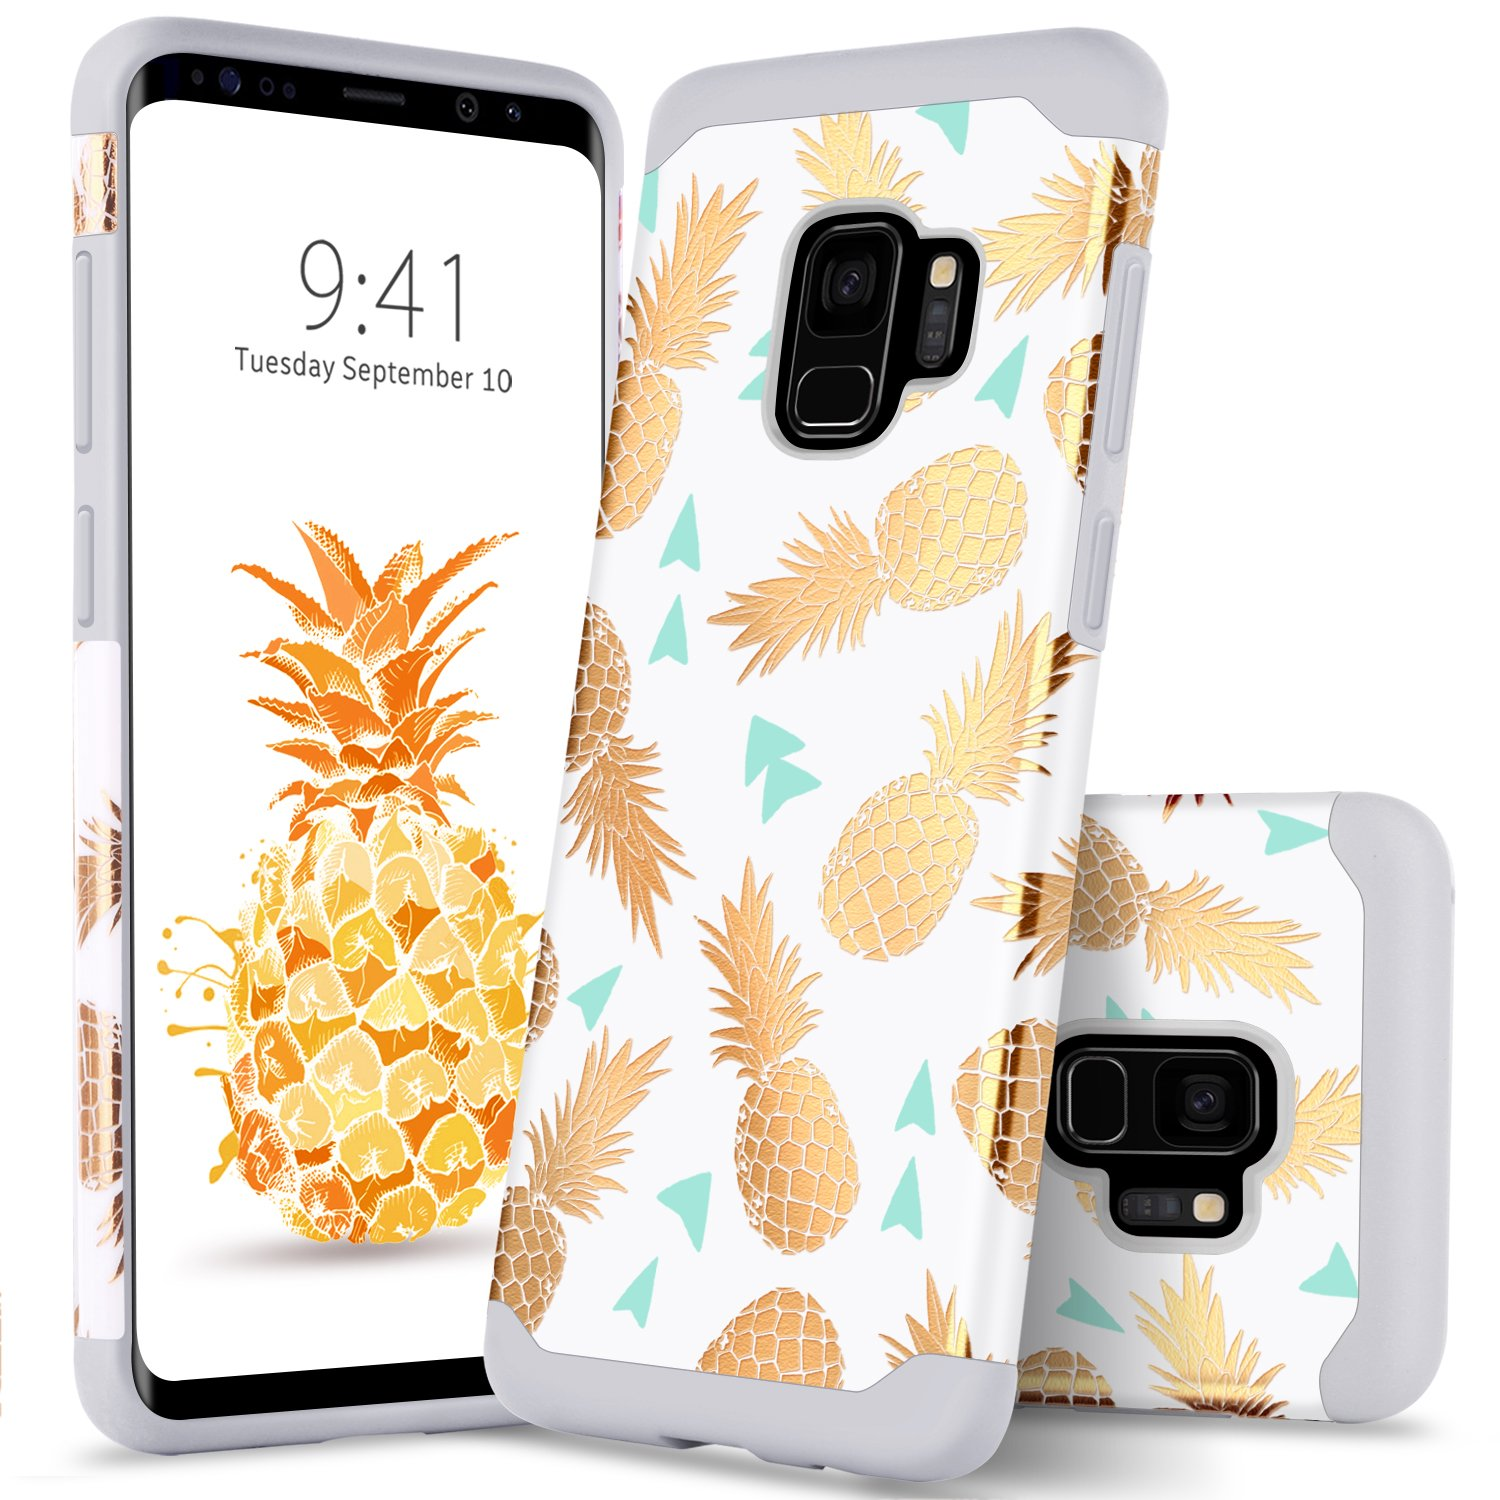 Galaxy S9 Case Samsung S9 Case Colorful Pineapple, GUAGUA Ultra Slim Fit Hybrid Hard PC Soft Rubber Cover Anti-scratch Shockproof Protective Phone Case for Samsung Galaxy S9 Case for Girls& Women Rose Gold White